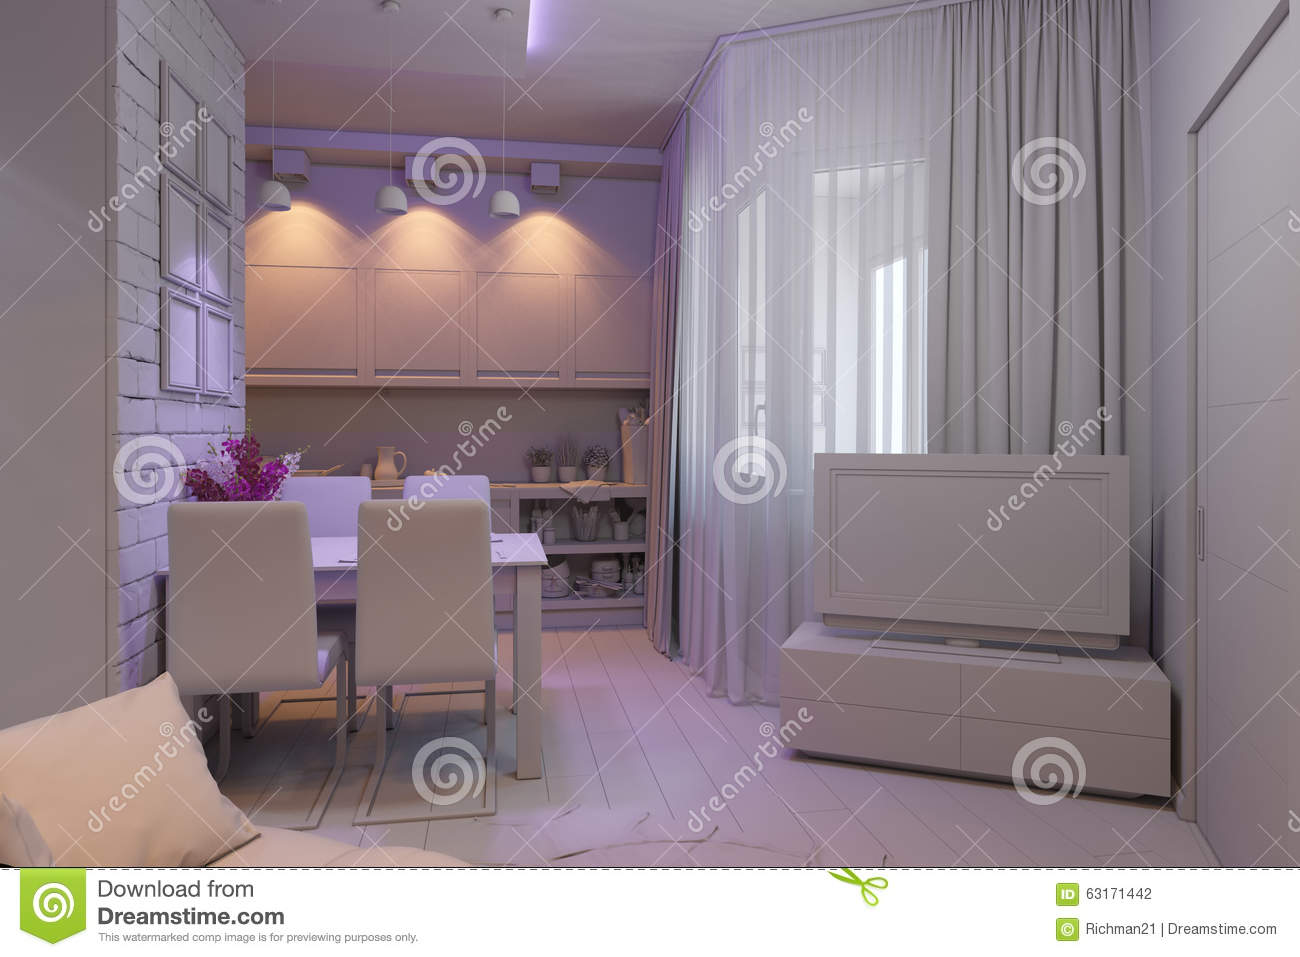 3d Illustration Of The One Room Apartment Visualization